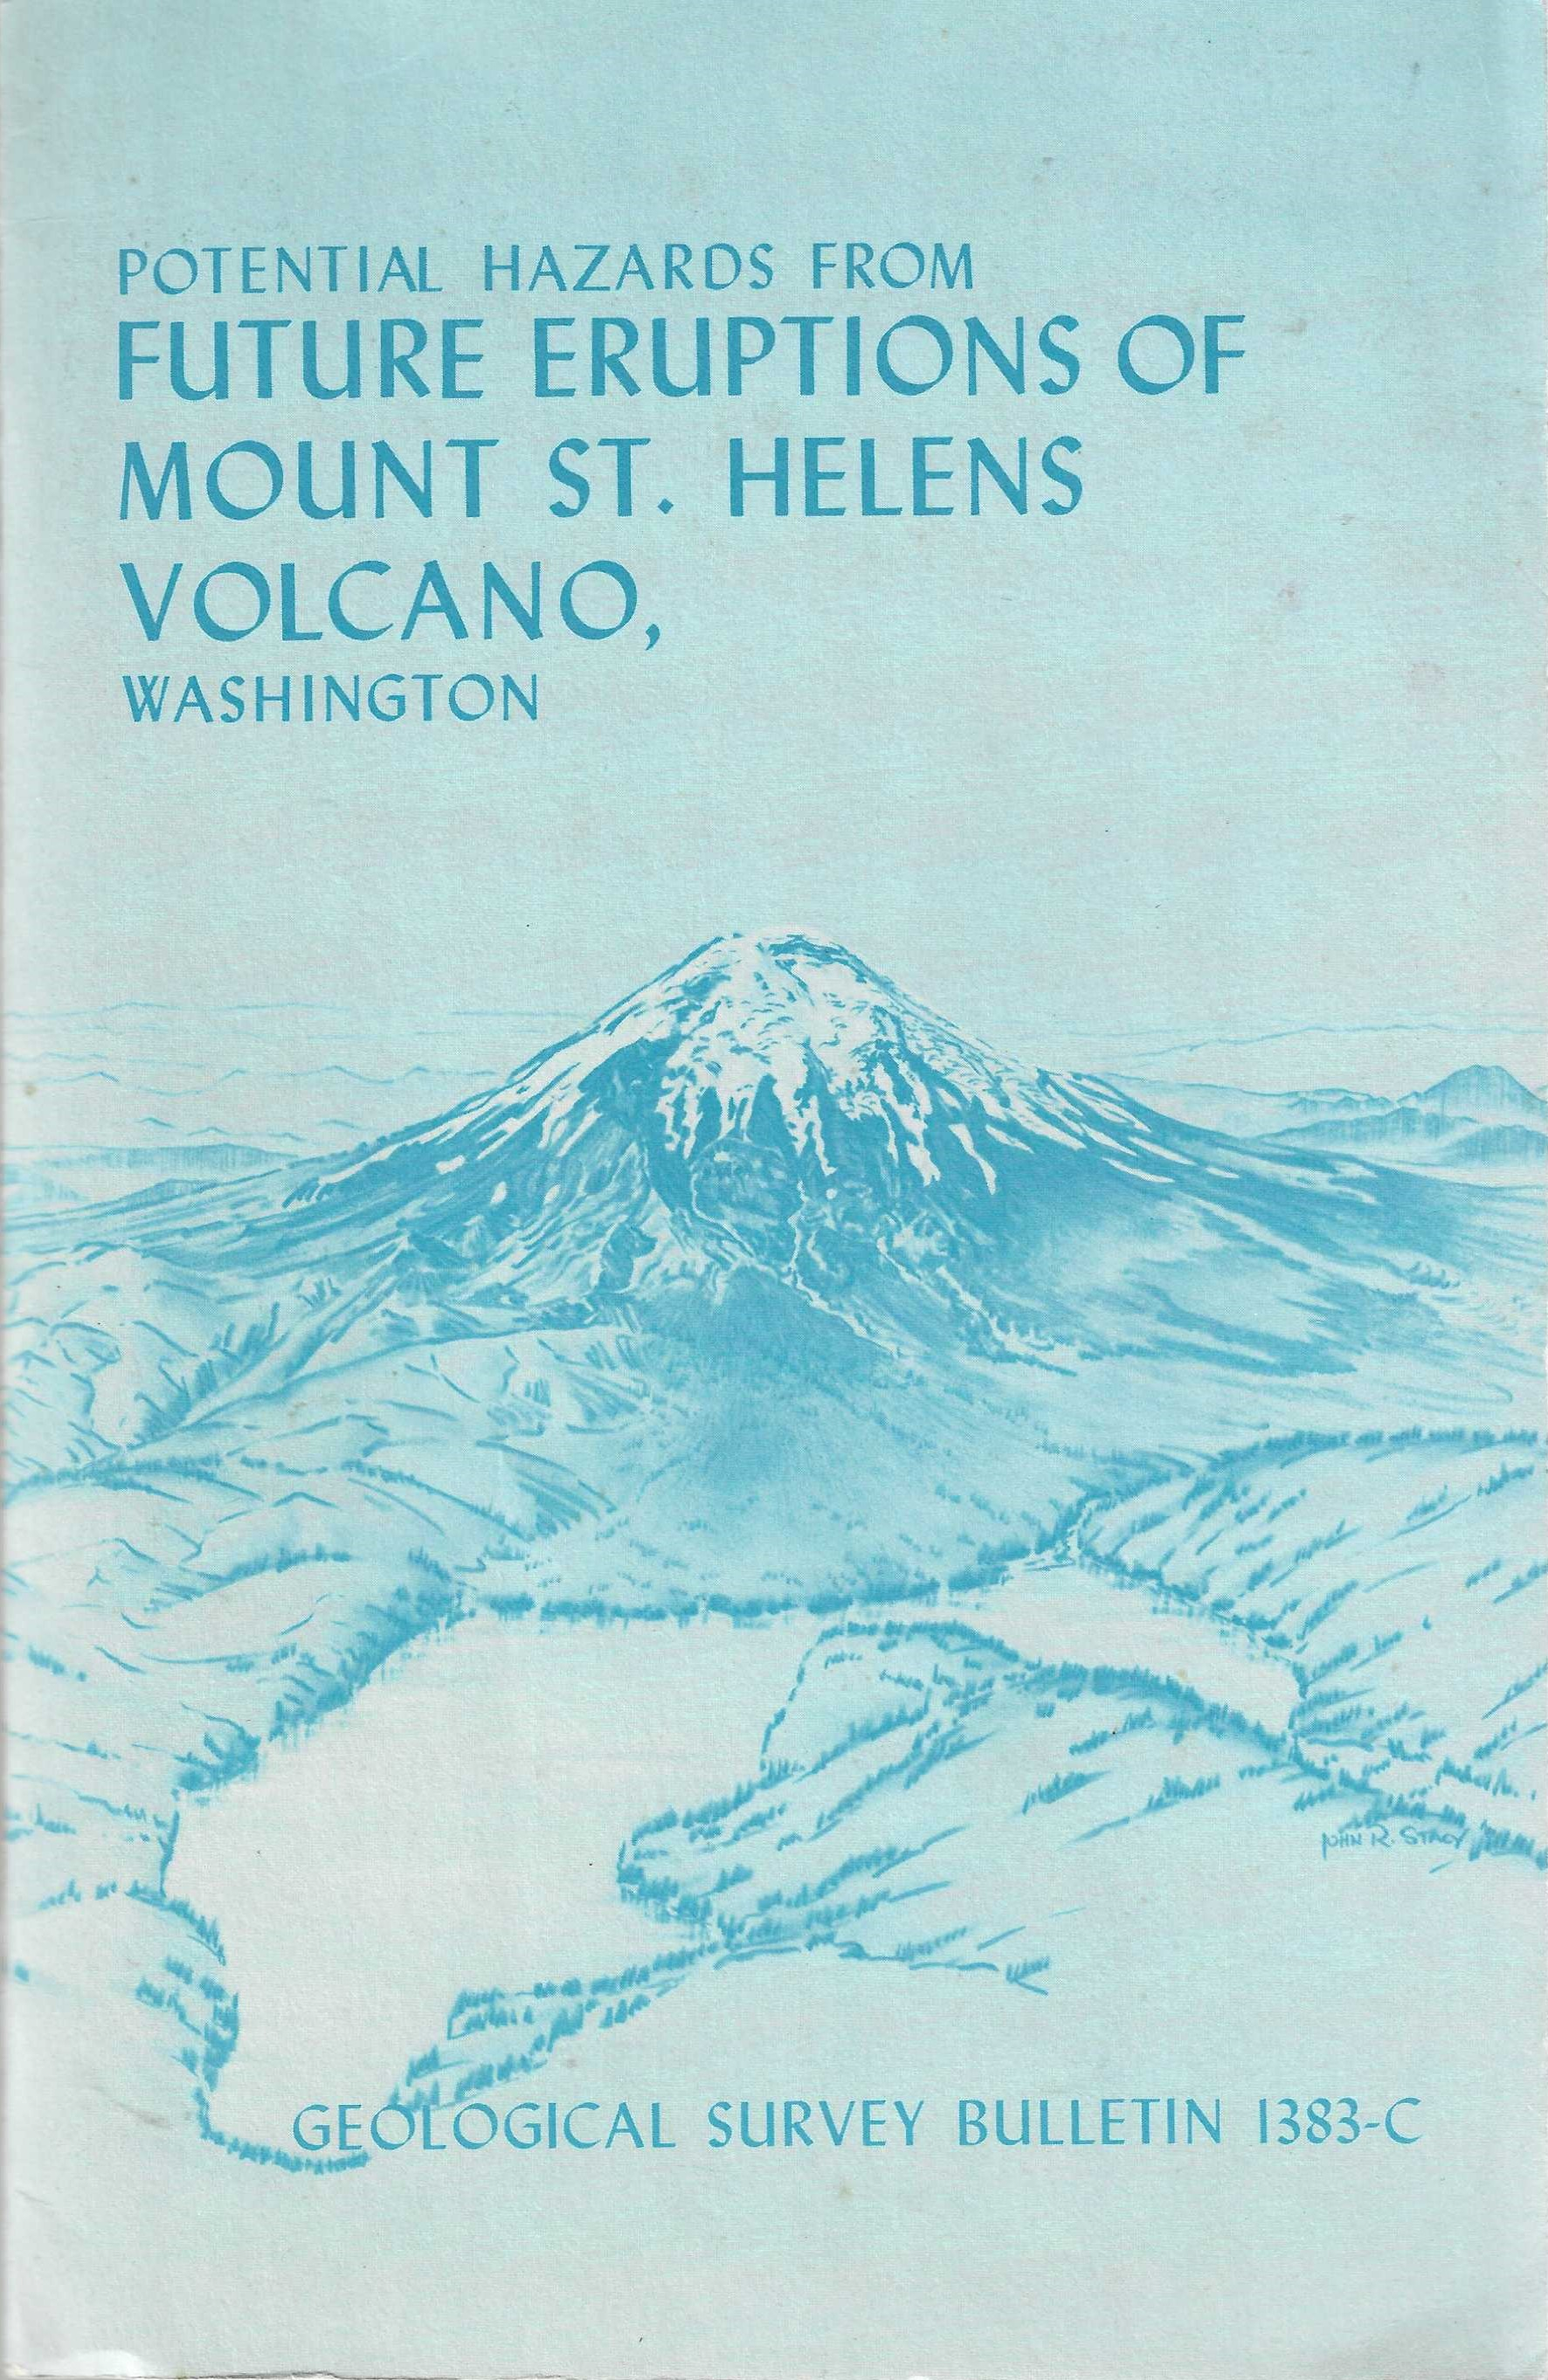 Image for Potential Hazards from Future Eruptions of Mount St. Helens Volcano, Washington.Geological Survey Bulletin 1383-C